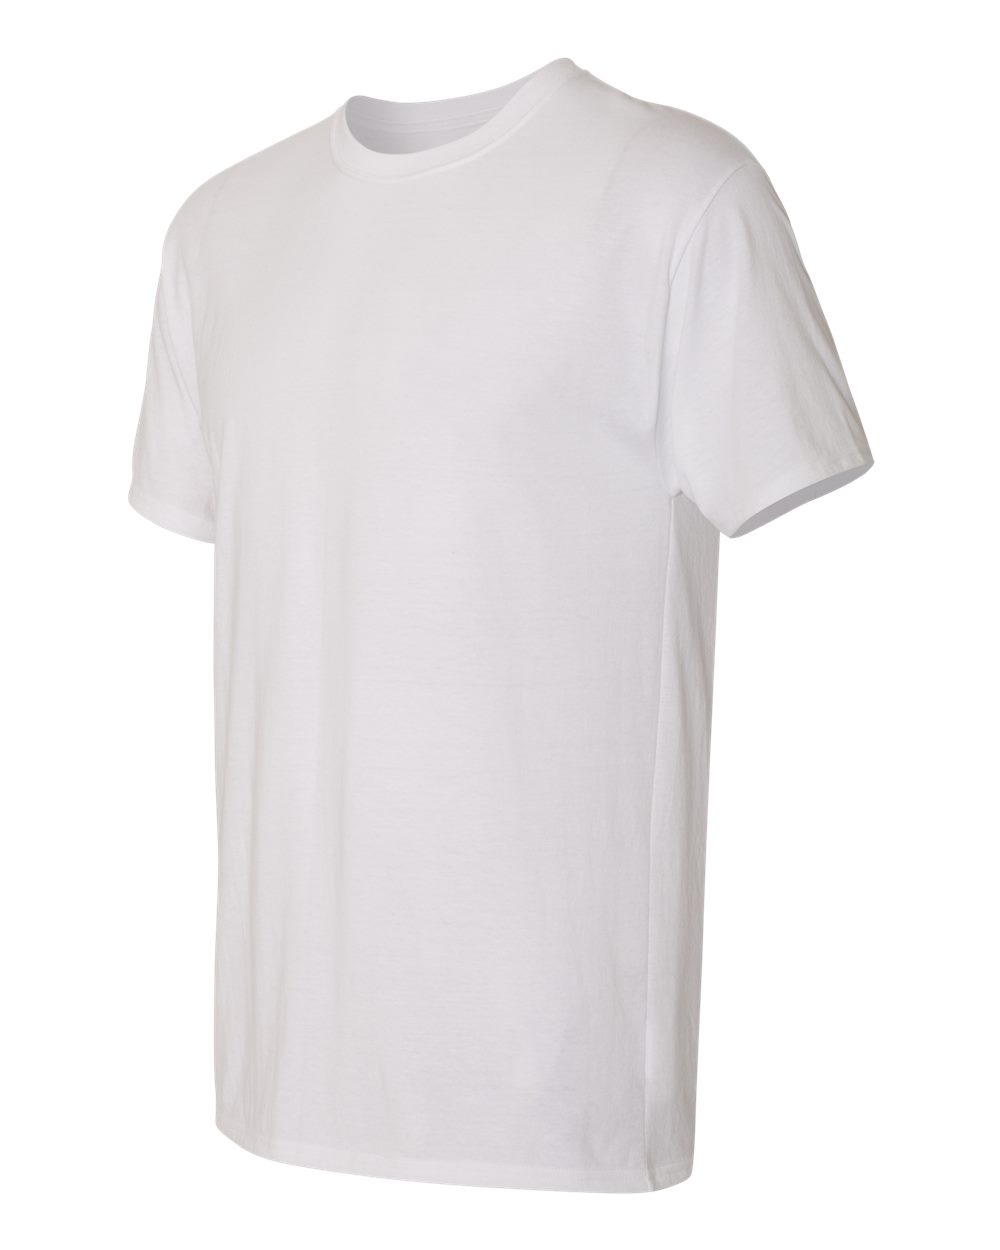 Hanes 42TB - X-Temp Triblend T-Shirt with Fresh IQ